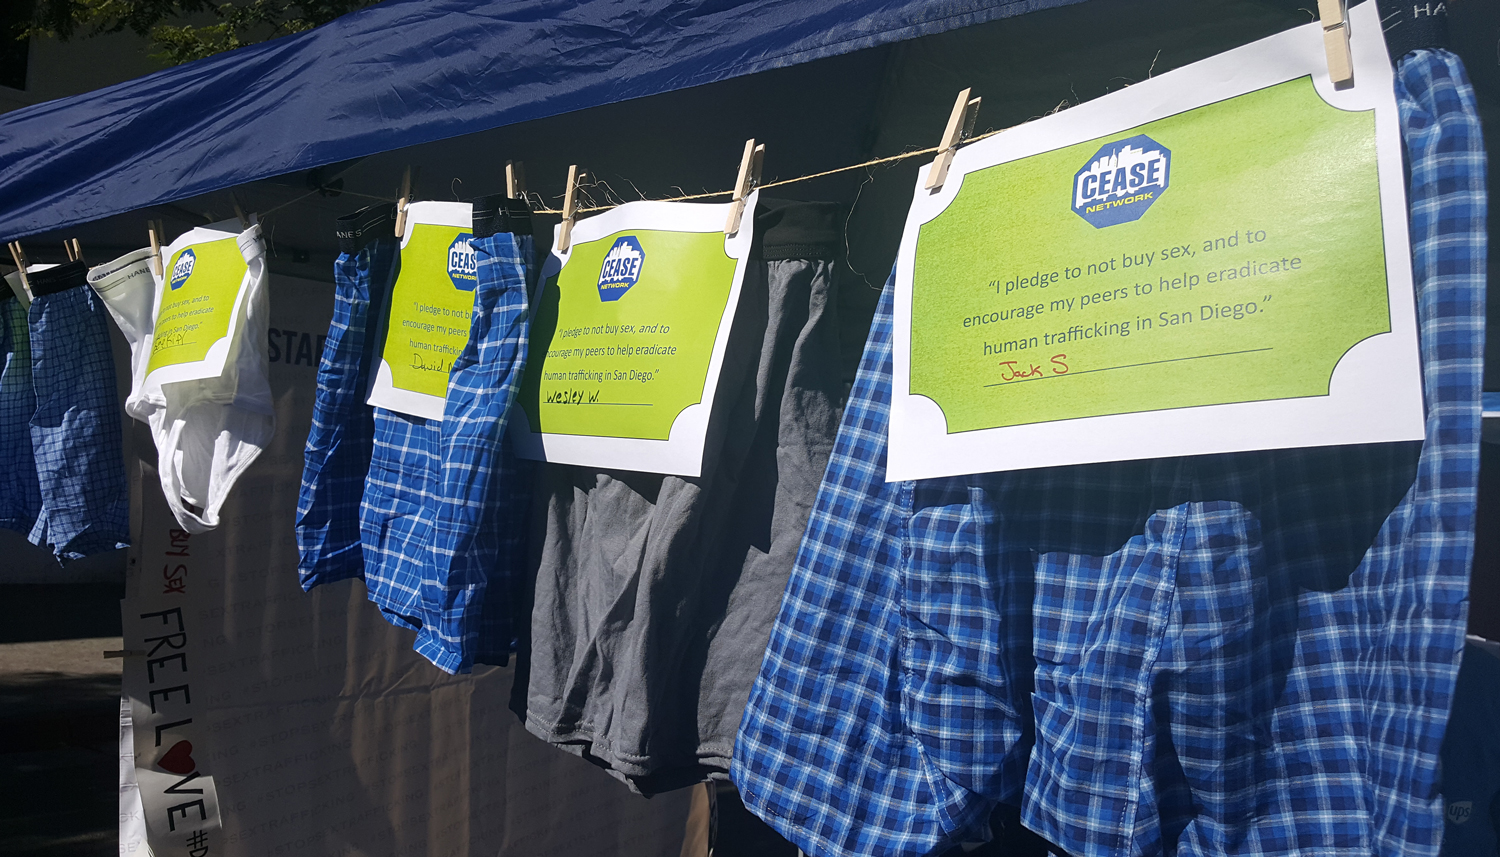 Photo of Cease Network Booth selling underwear to stand up against Human Trafficking at the Freedom Now Fair.